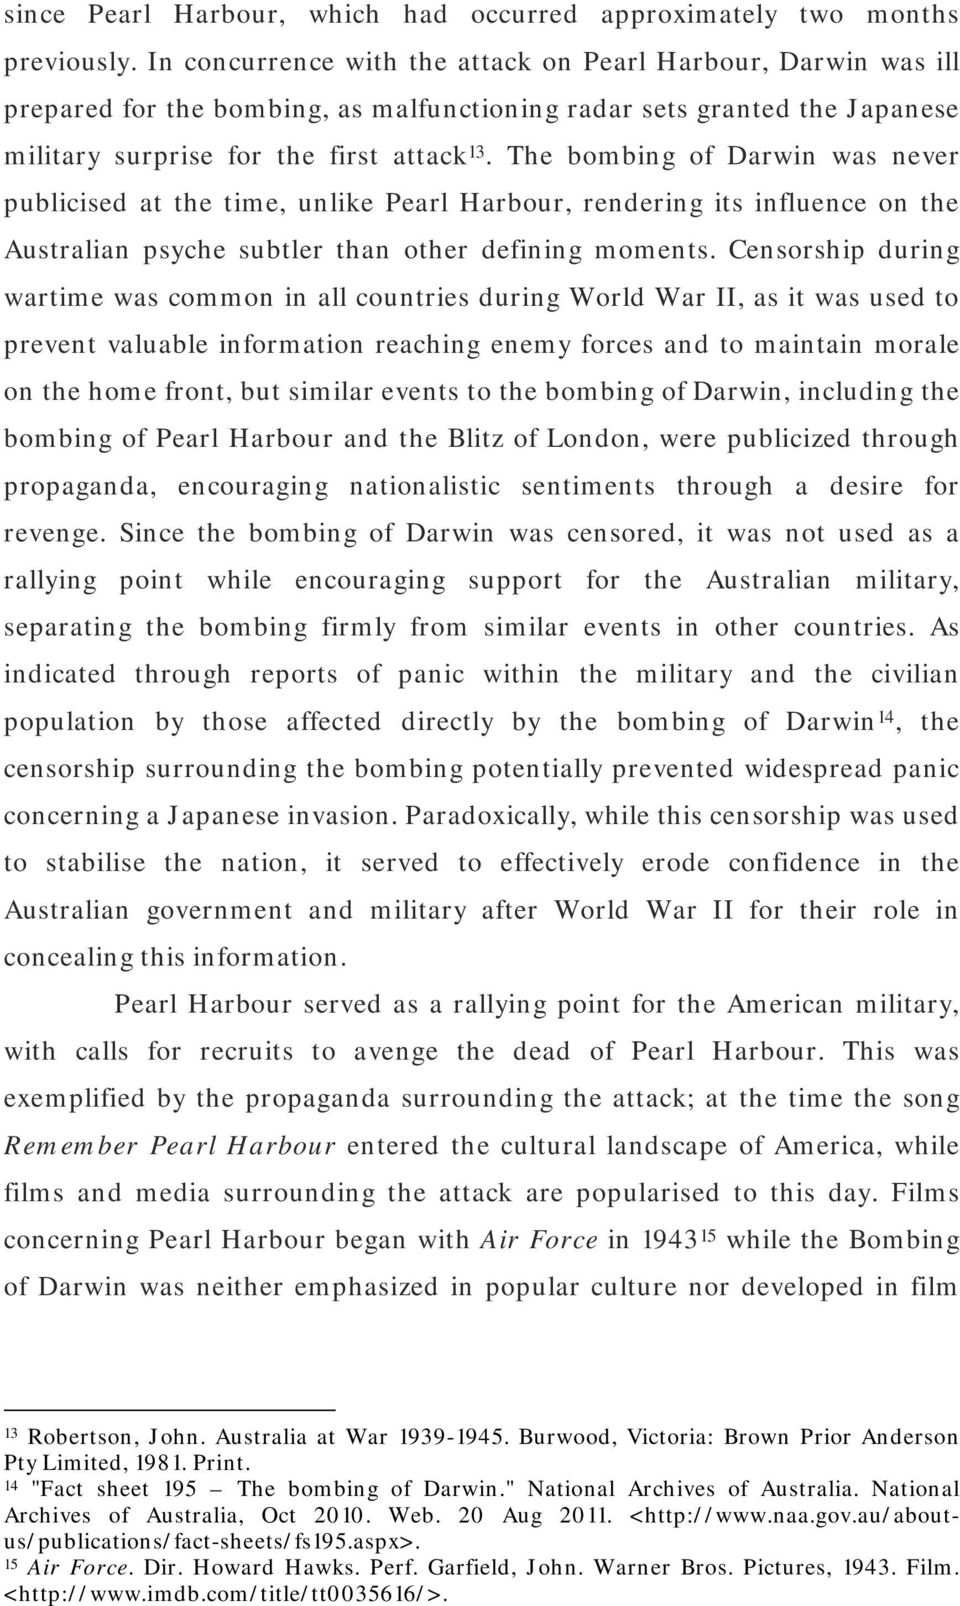 bombing of darwin essay Tok essay 2016 cargado por emma  a great example of this is darwin's theory of  it is historically significant as it depicts a bombing in a town called.